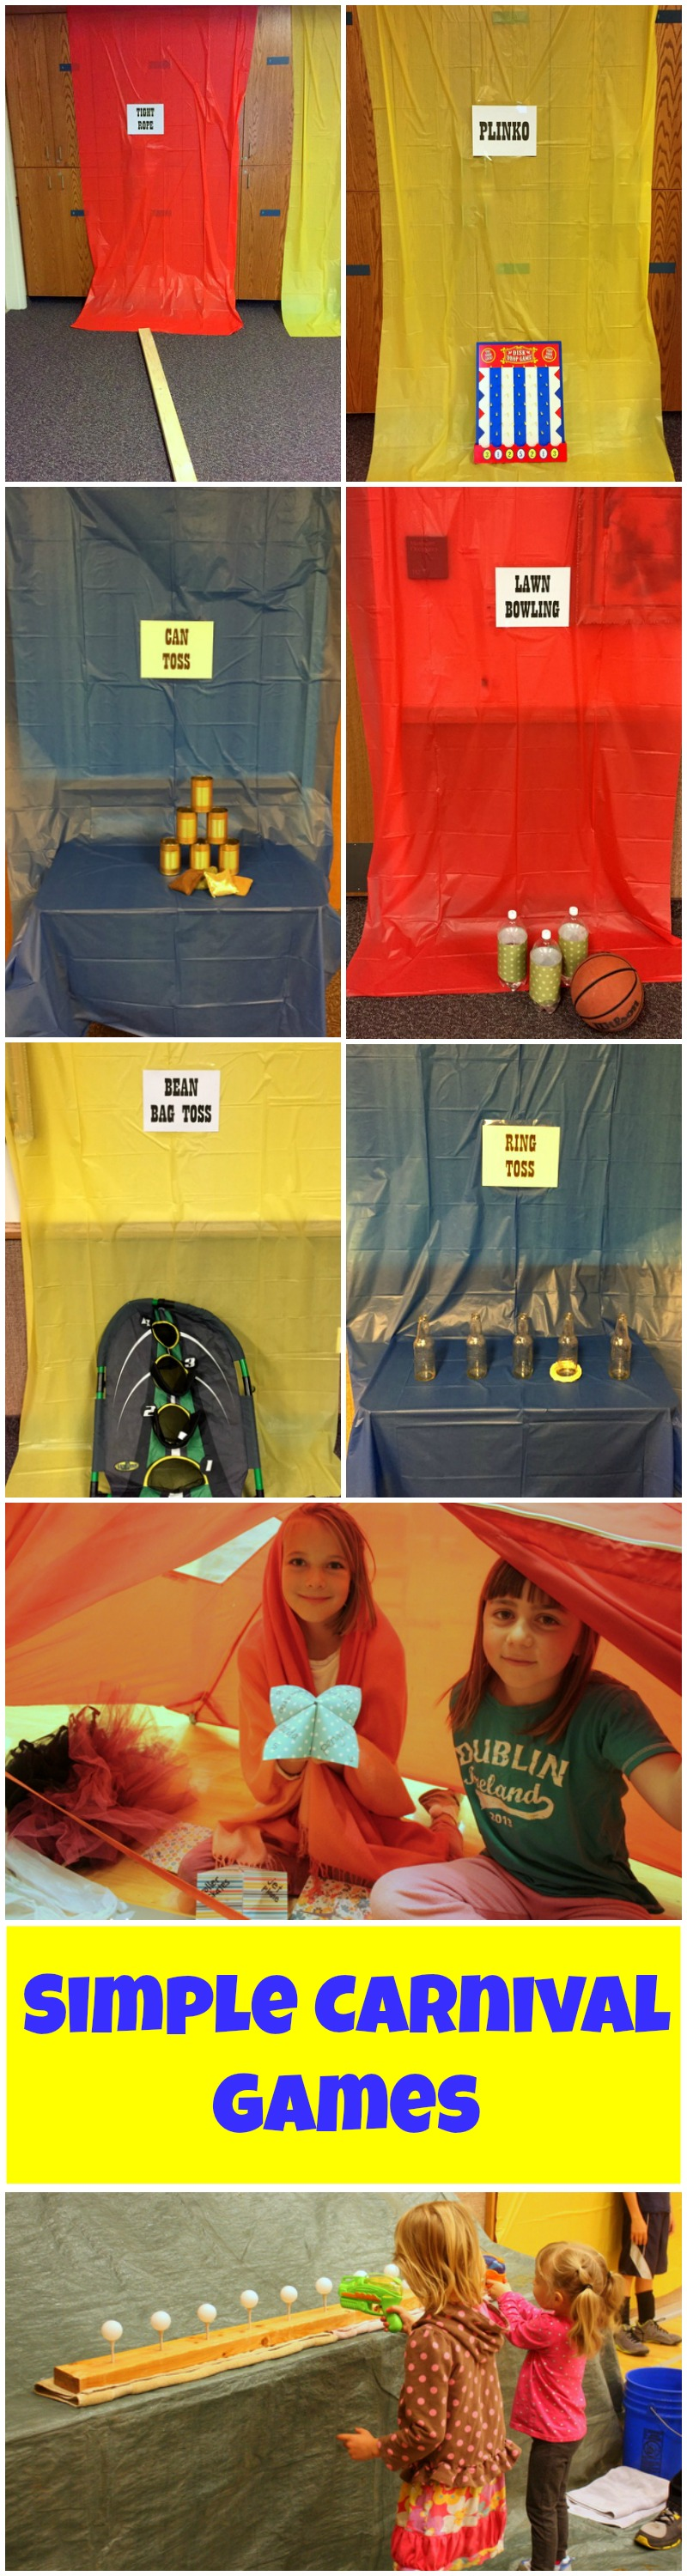 Simple Carnival Games - Events To Celebrate